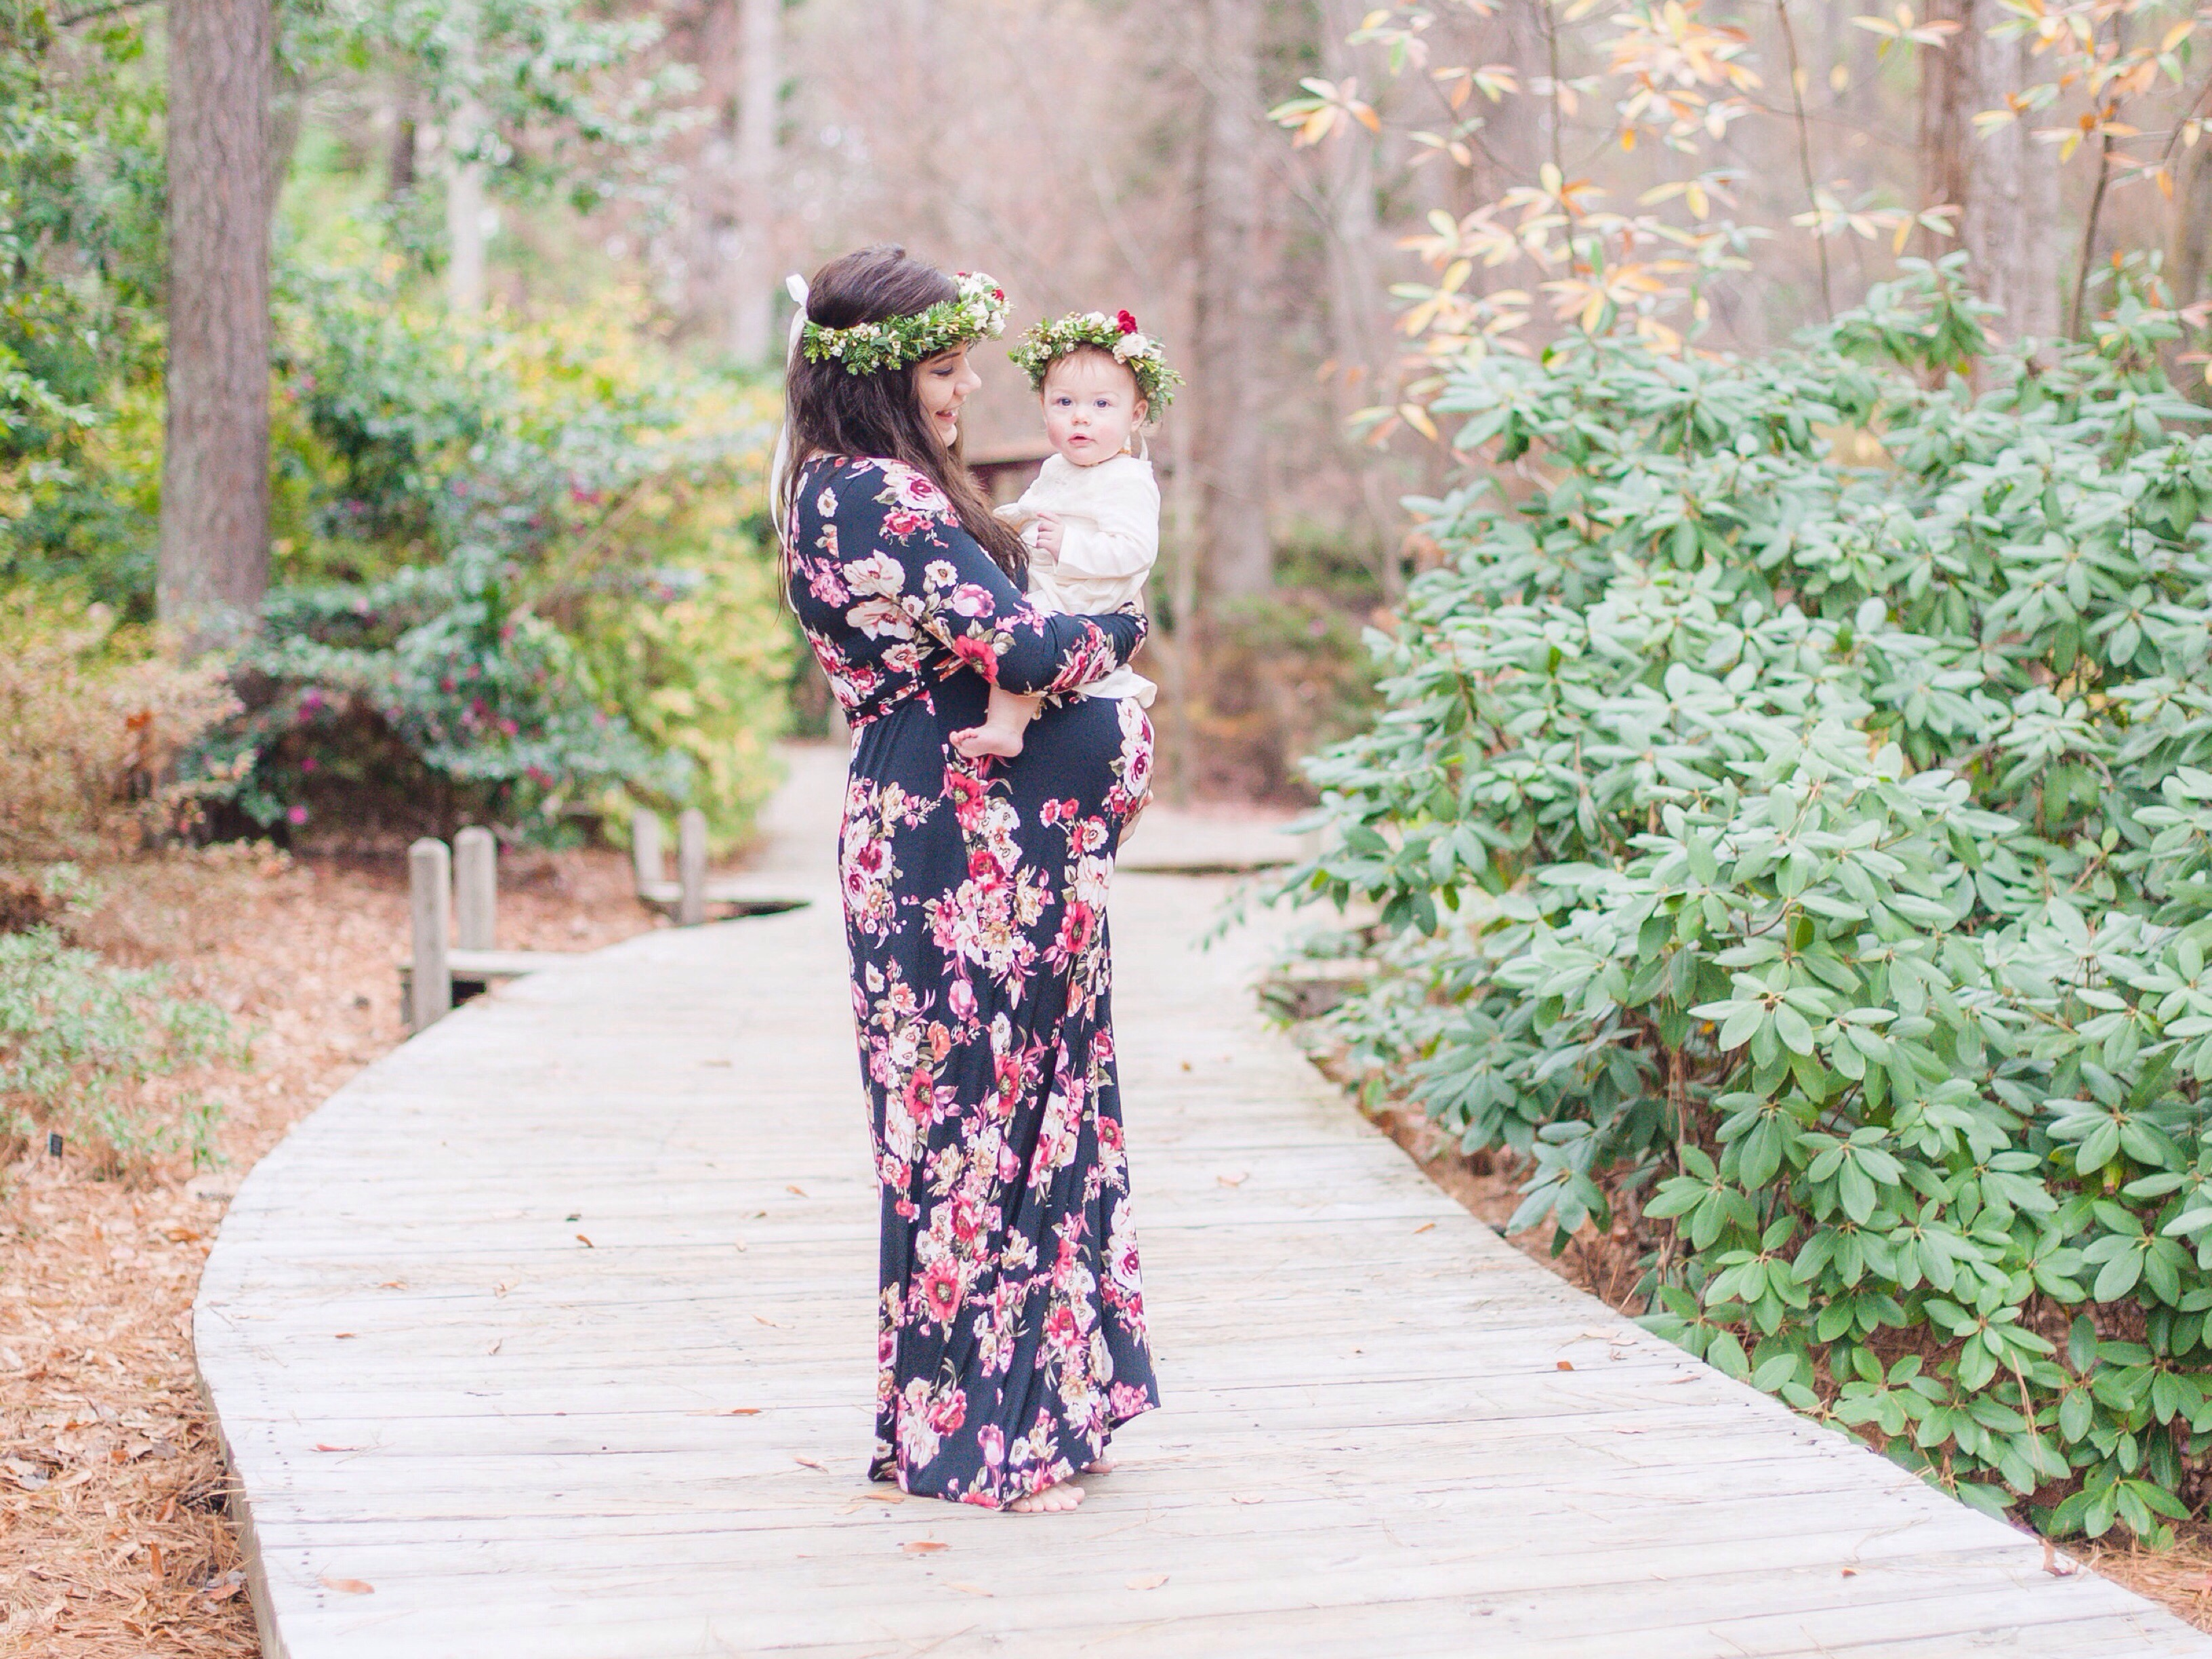 Vines Botanical Garden Maternity Session: Photography by Kira Ellen Photography via Heather Renee Celebrations